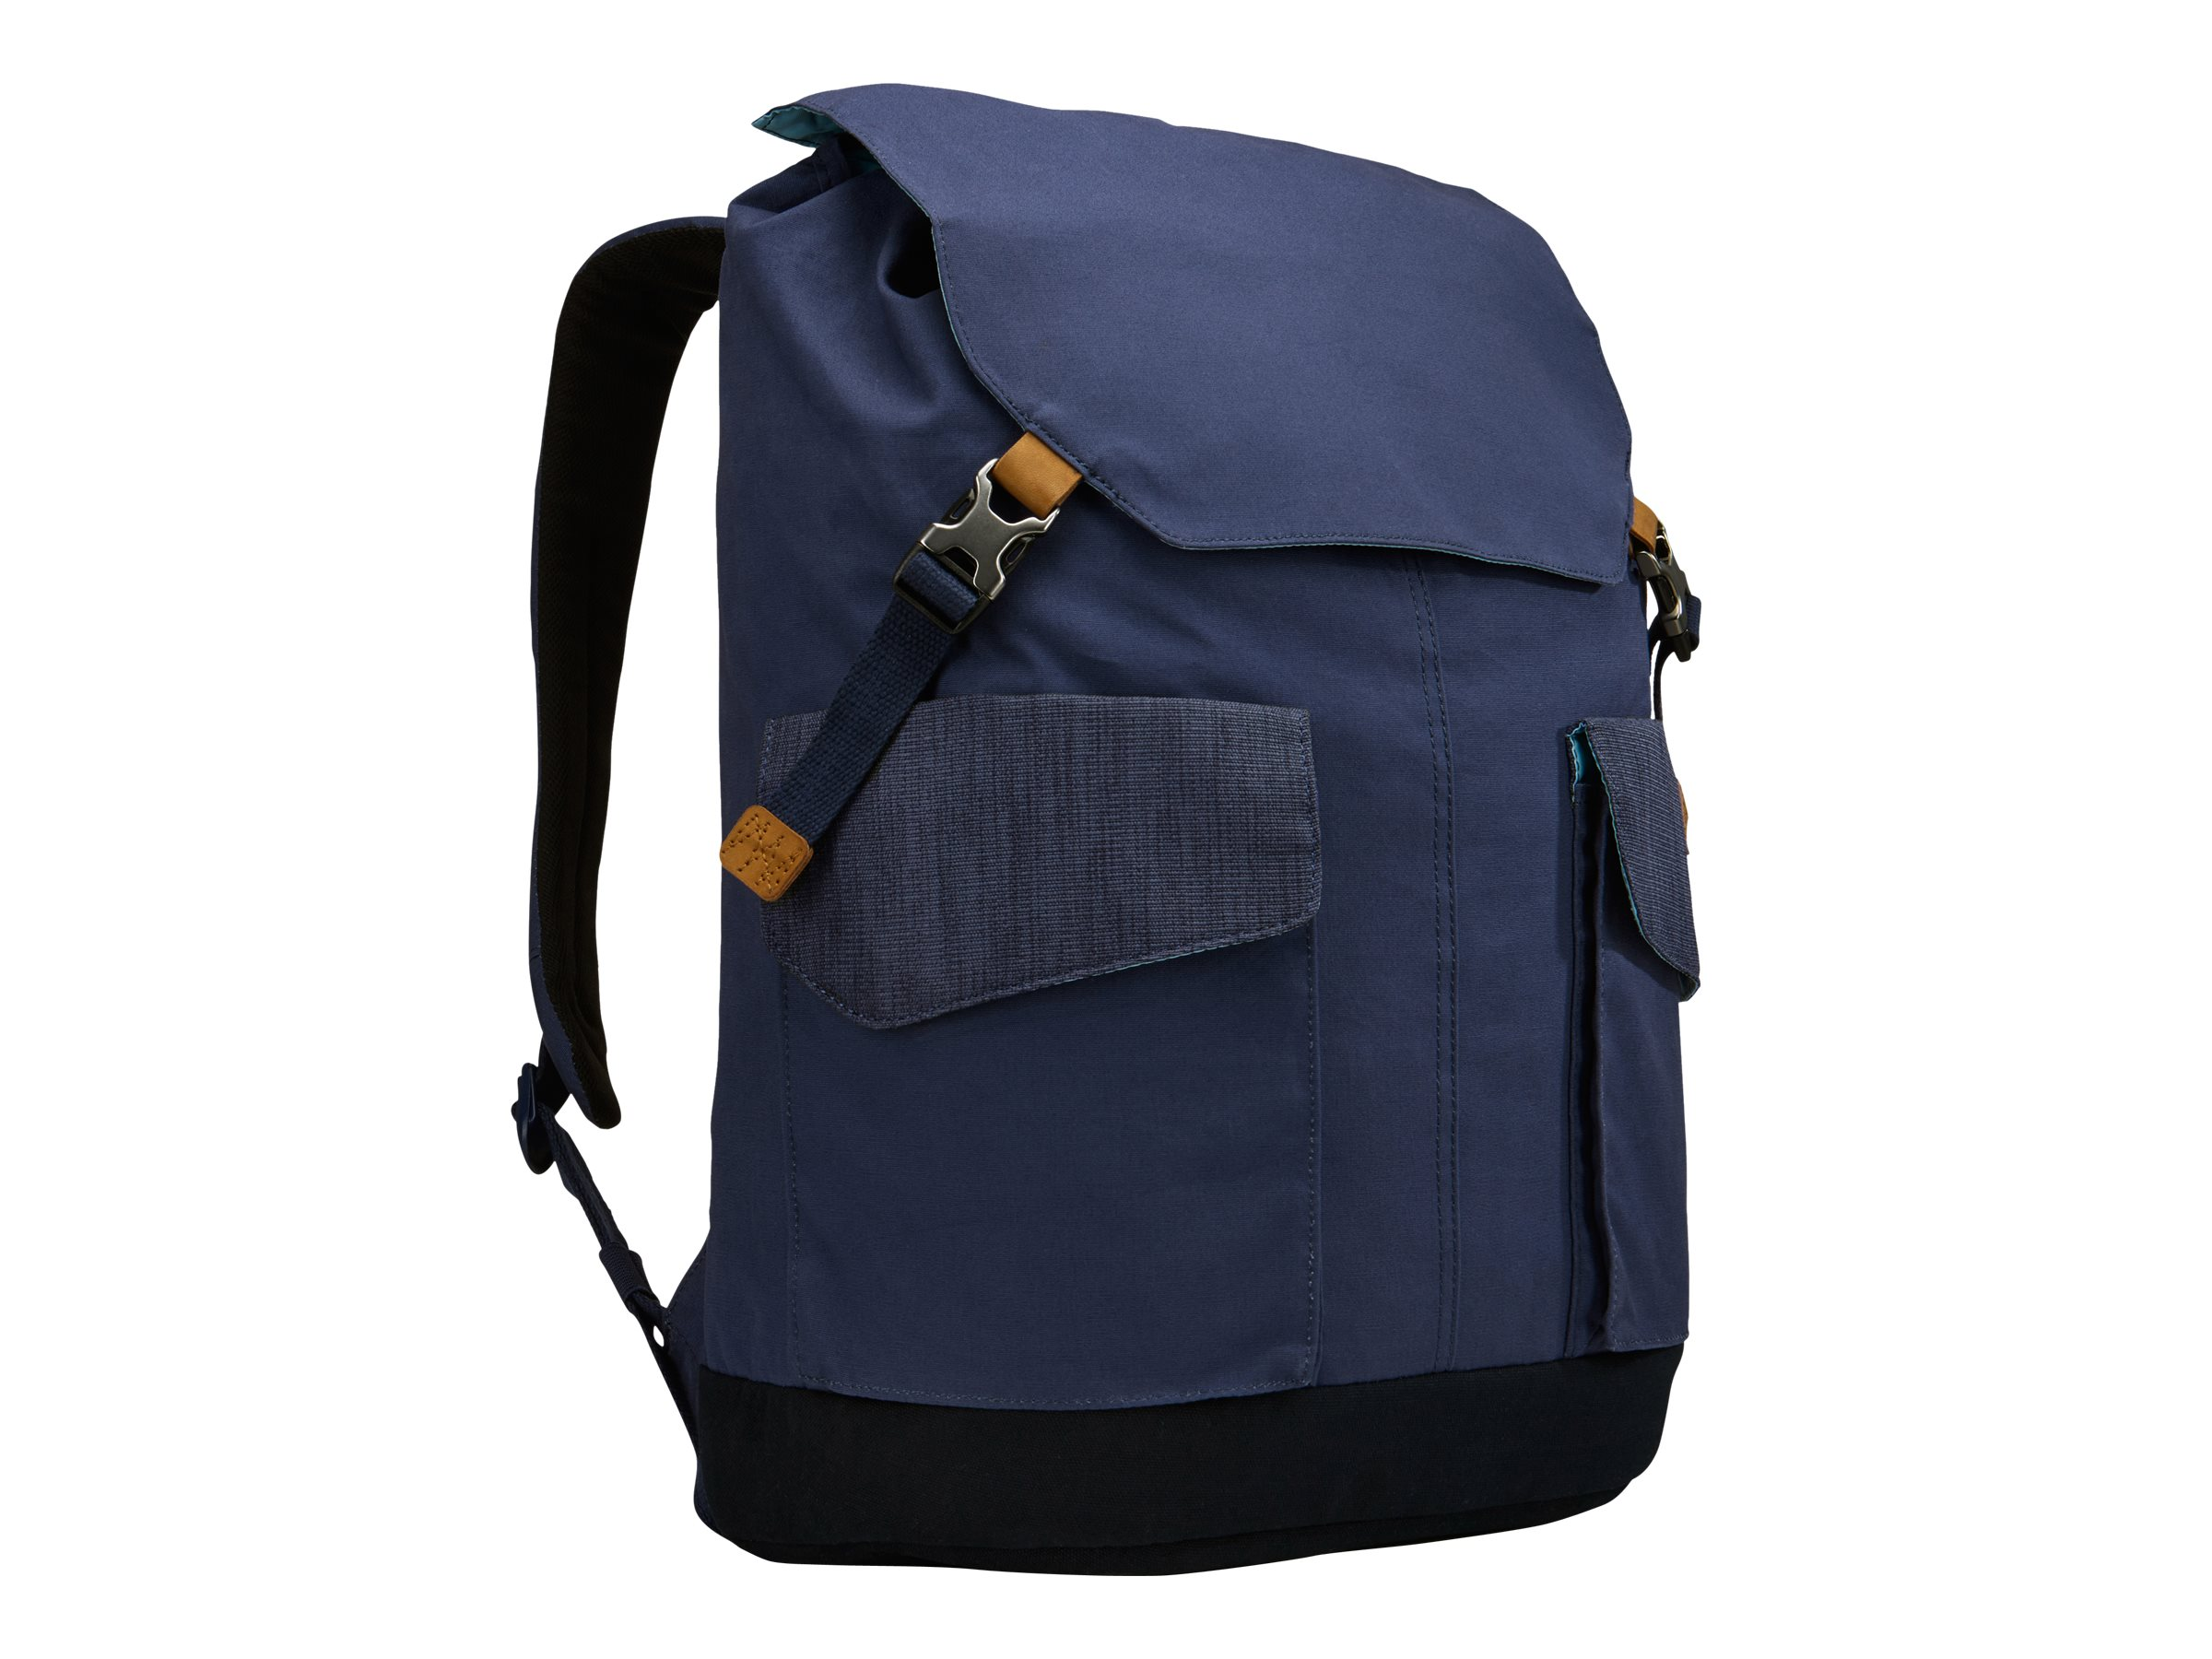 Case Logic LoDo Large Backpack, Blue, LODP115BLUE, 30640156, Carrying Cases - Notebook